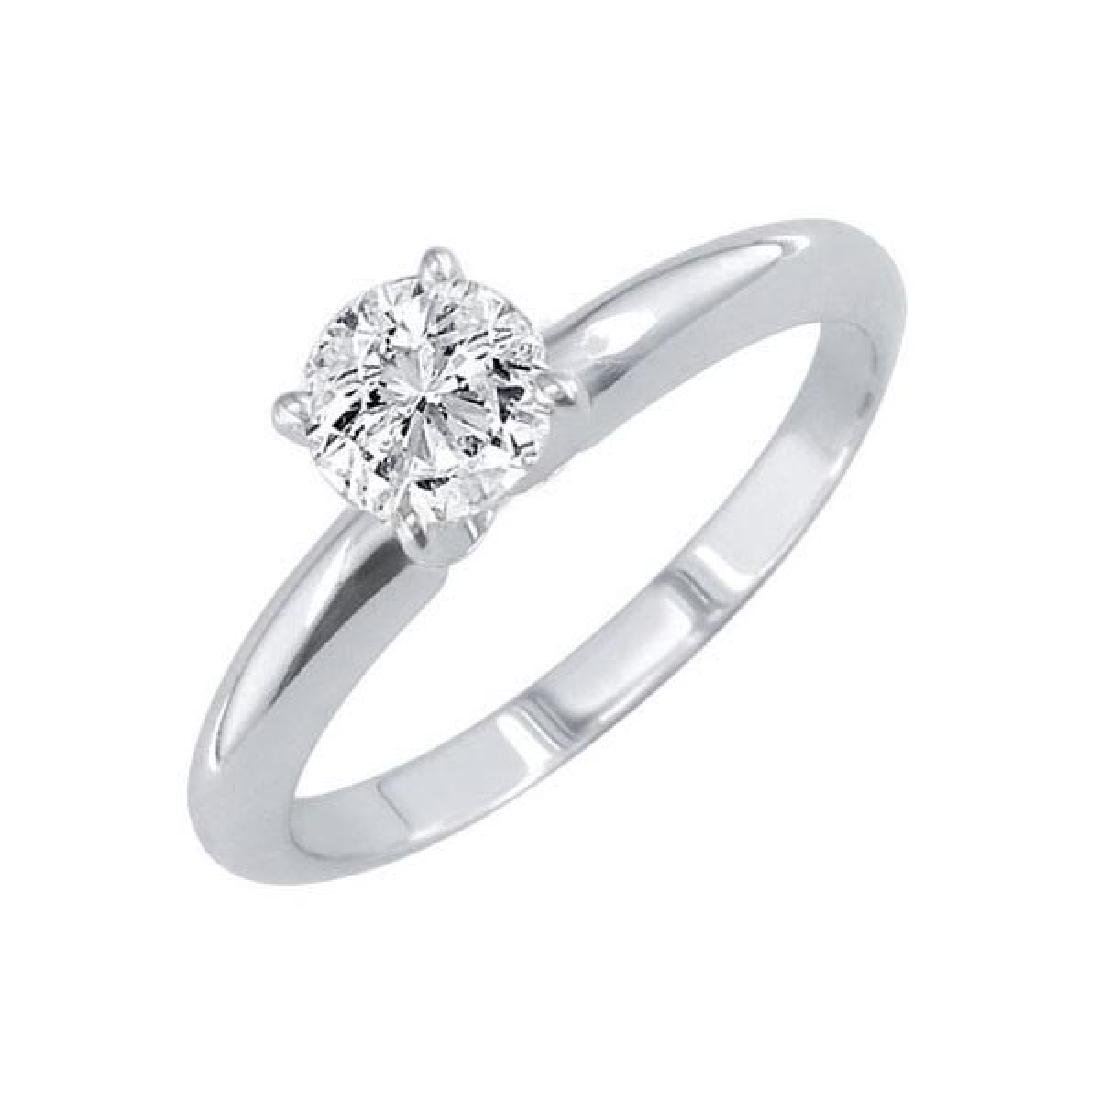 Certified 1 CTW Round Diamond Solitaire 14k Ring H/SI1